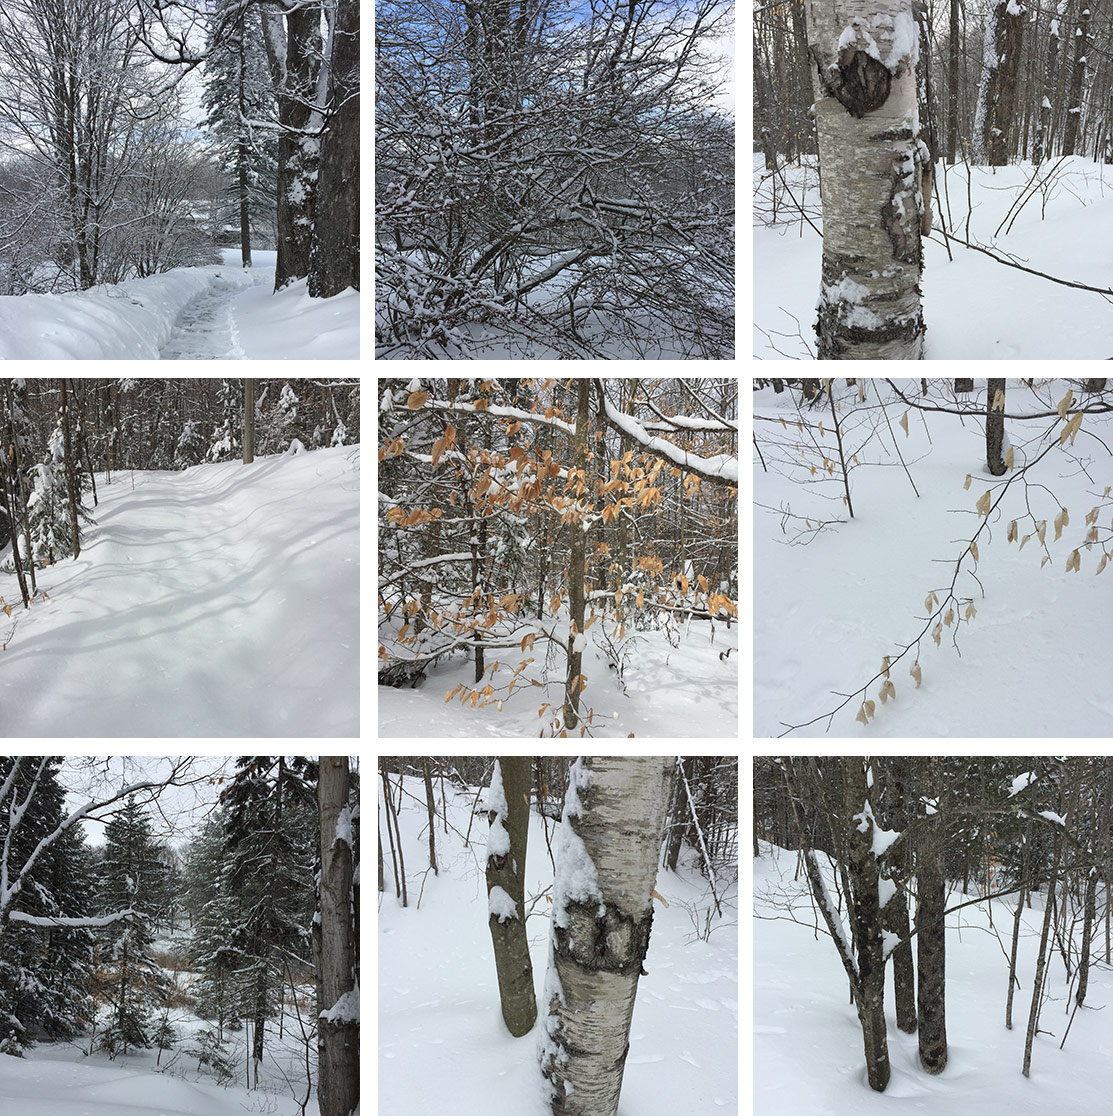 Some scenes from our walk in the Vermont woods.